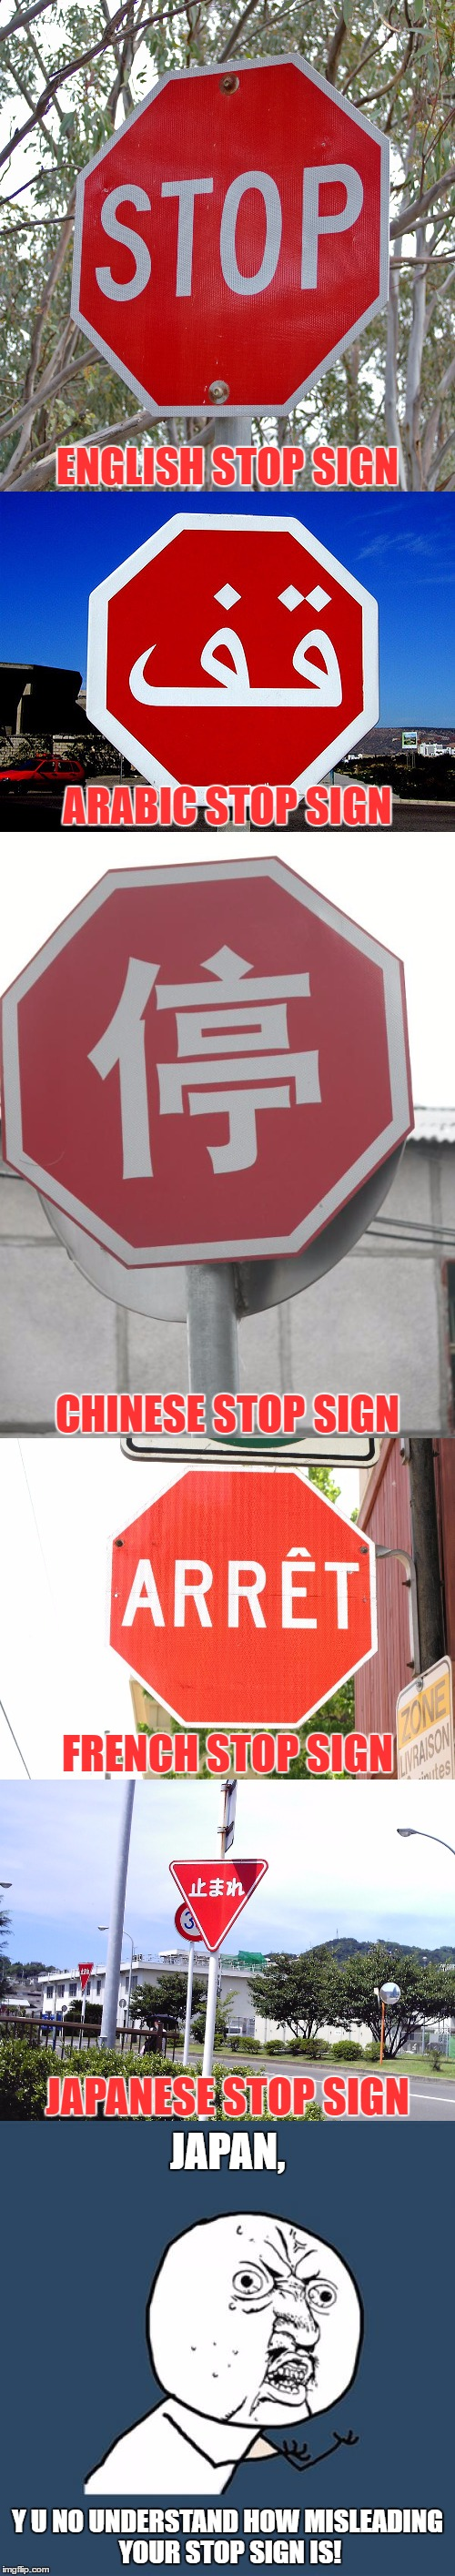 We Talked About UniversalsIn Cultural Anthropology And Our Professor Gave Us An Example Like This One, Decided To Meme It! | Y U NO UNDERSTAND HOW MISLEADING YOUR STOP SIGN IS! JAPAN, JAPANESE STOP SIGN FRENCH STOP SIGN CHINESE STOP SIGN ARABIC STOP SIGN ENGLISH ST | image tagged in memes,stop sign,cultural anthropology,funny,professor,universals | made w/ Imgflip meme maker